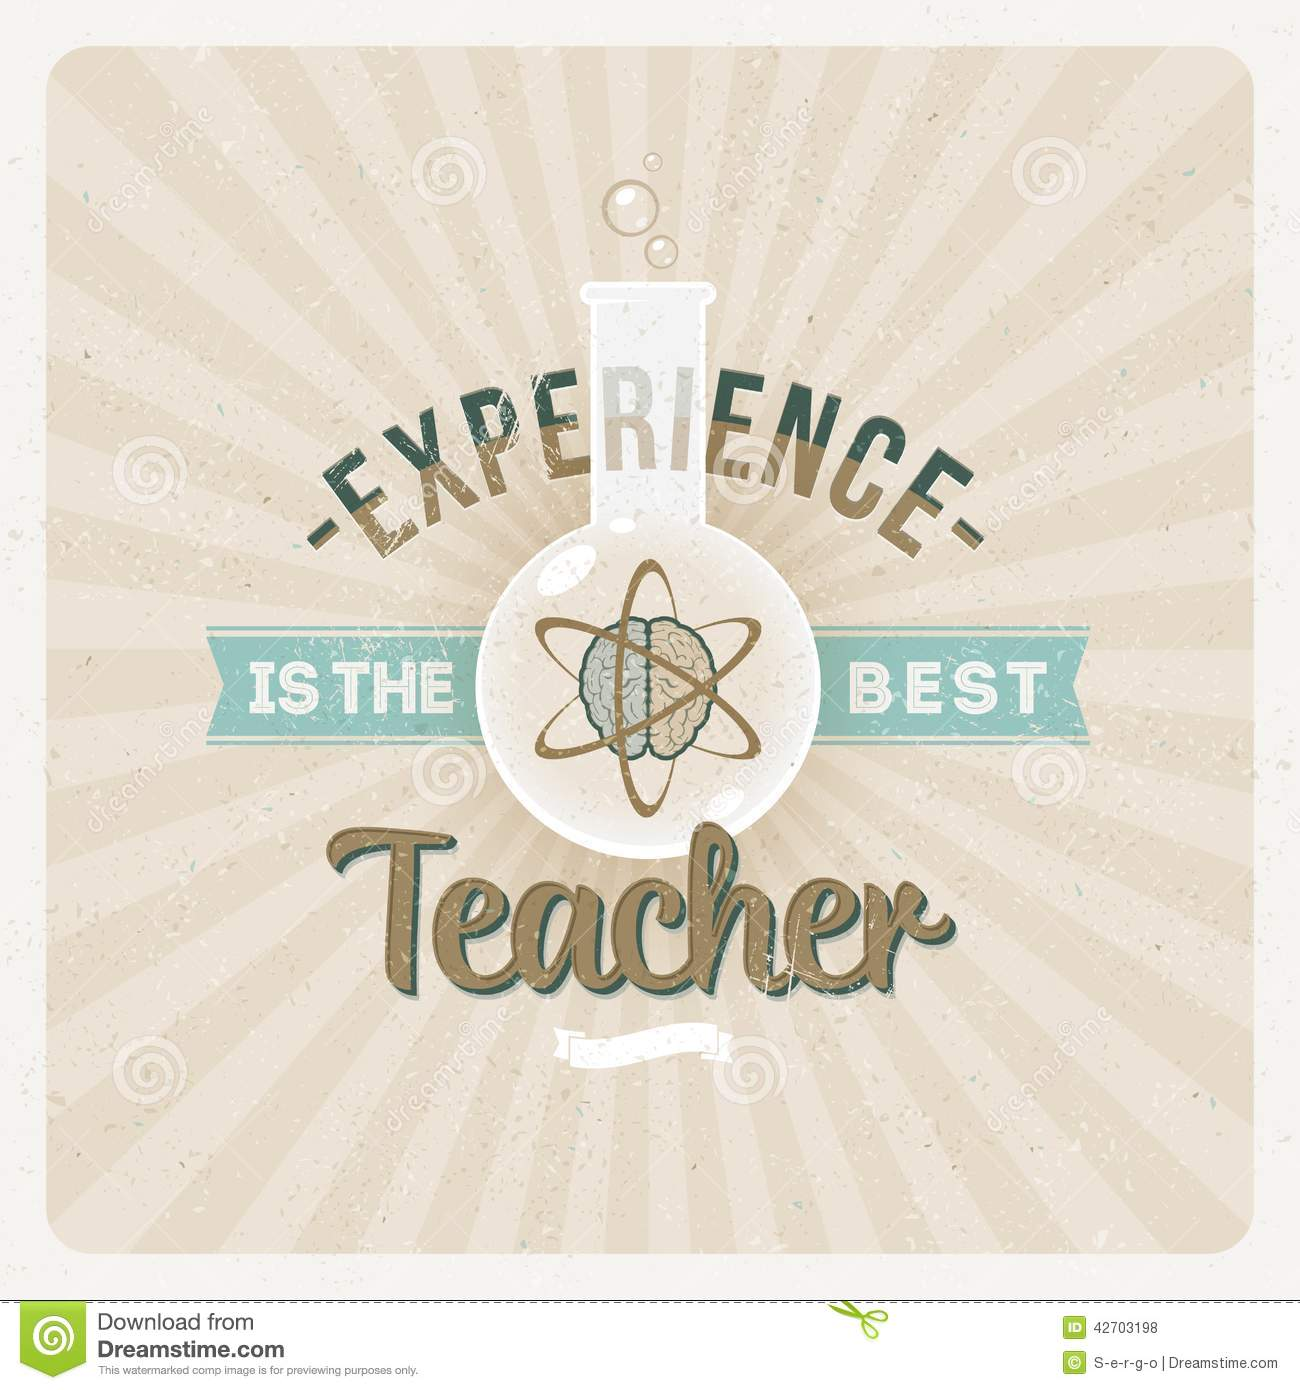 One of the best teaching experience